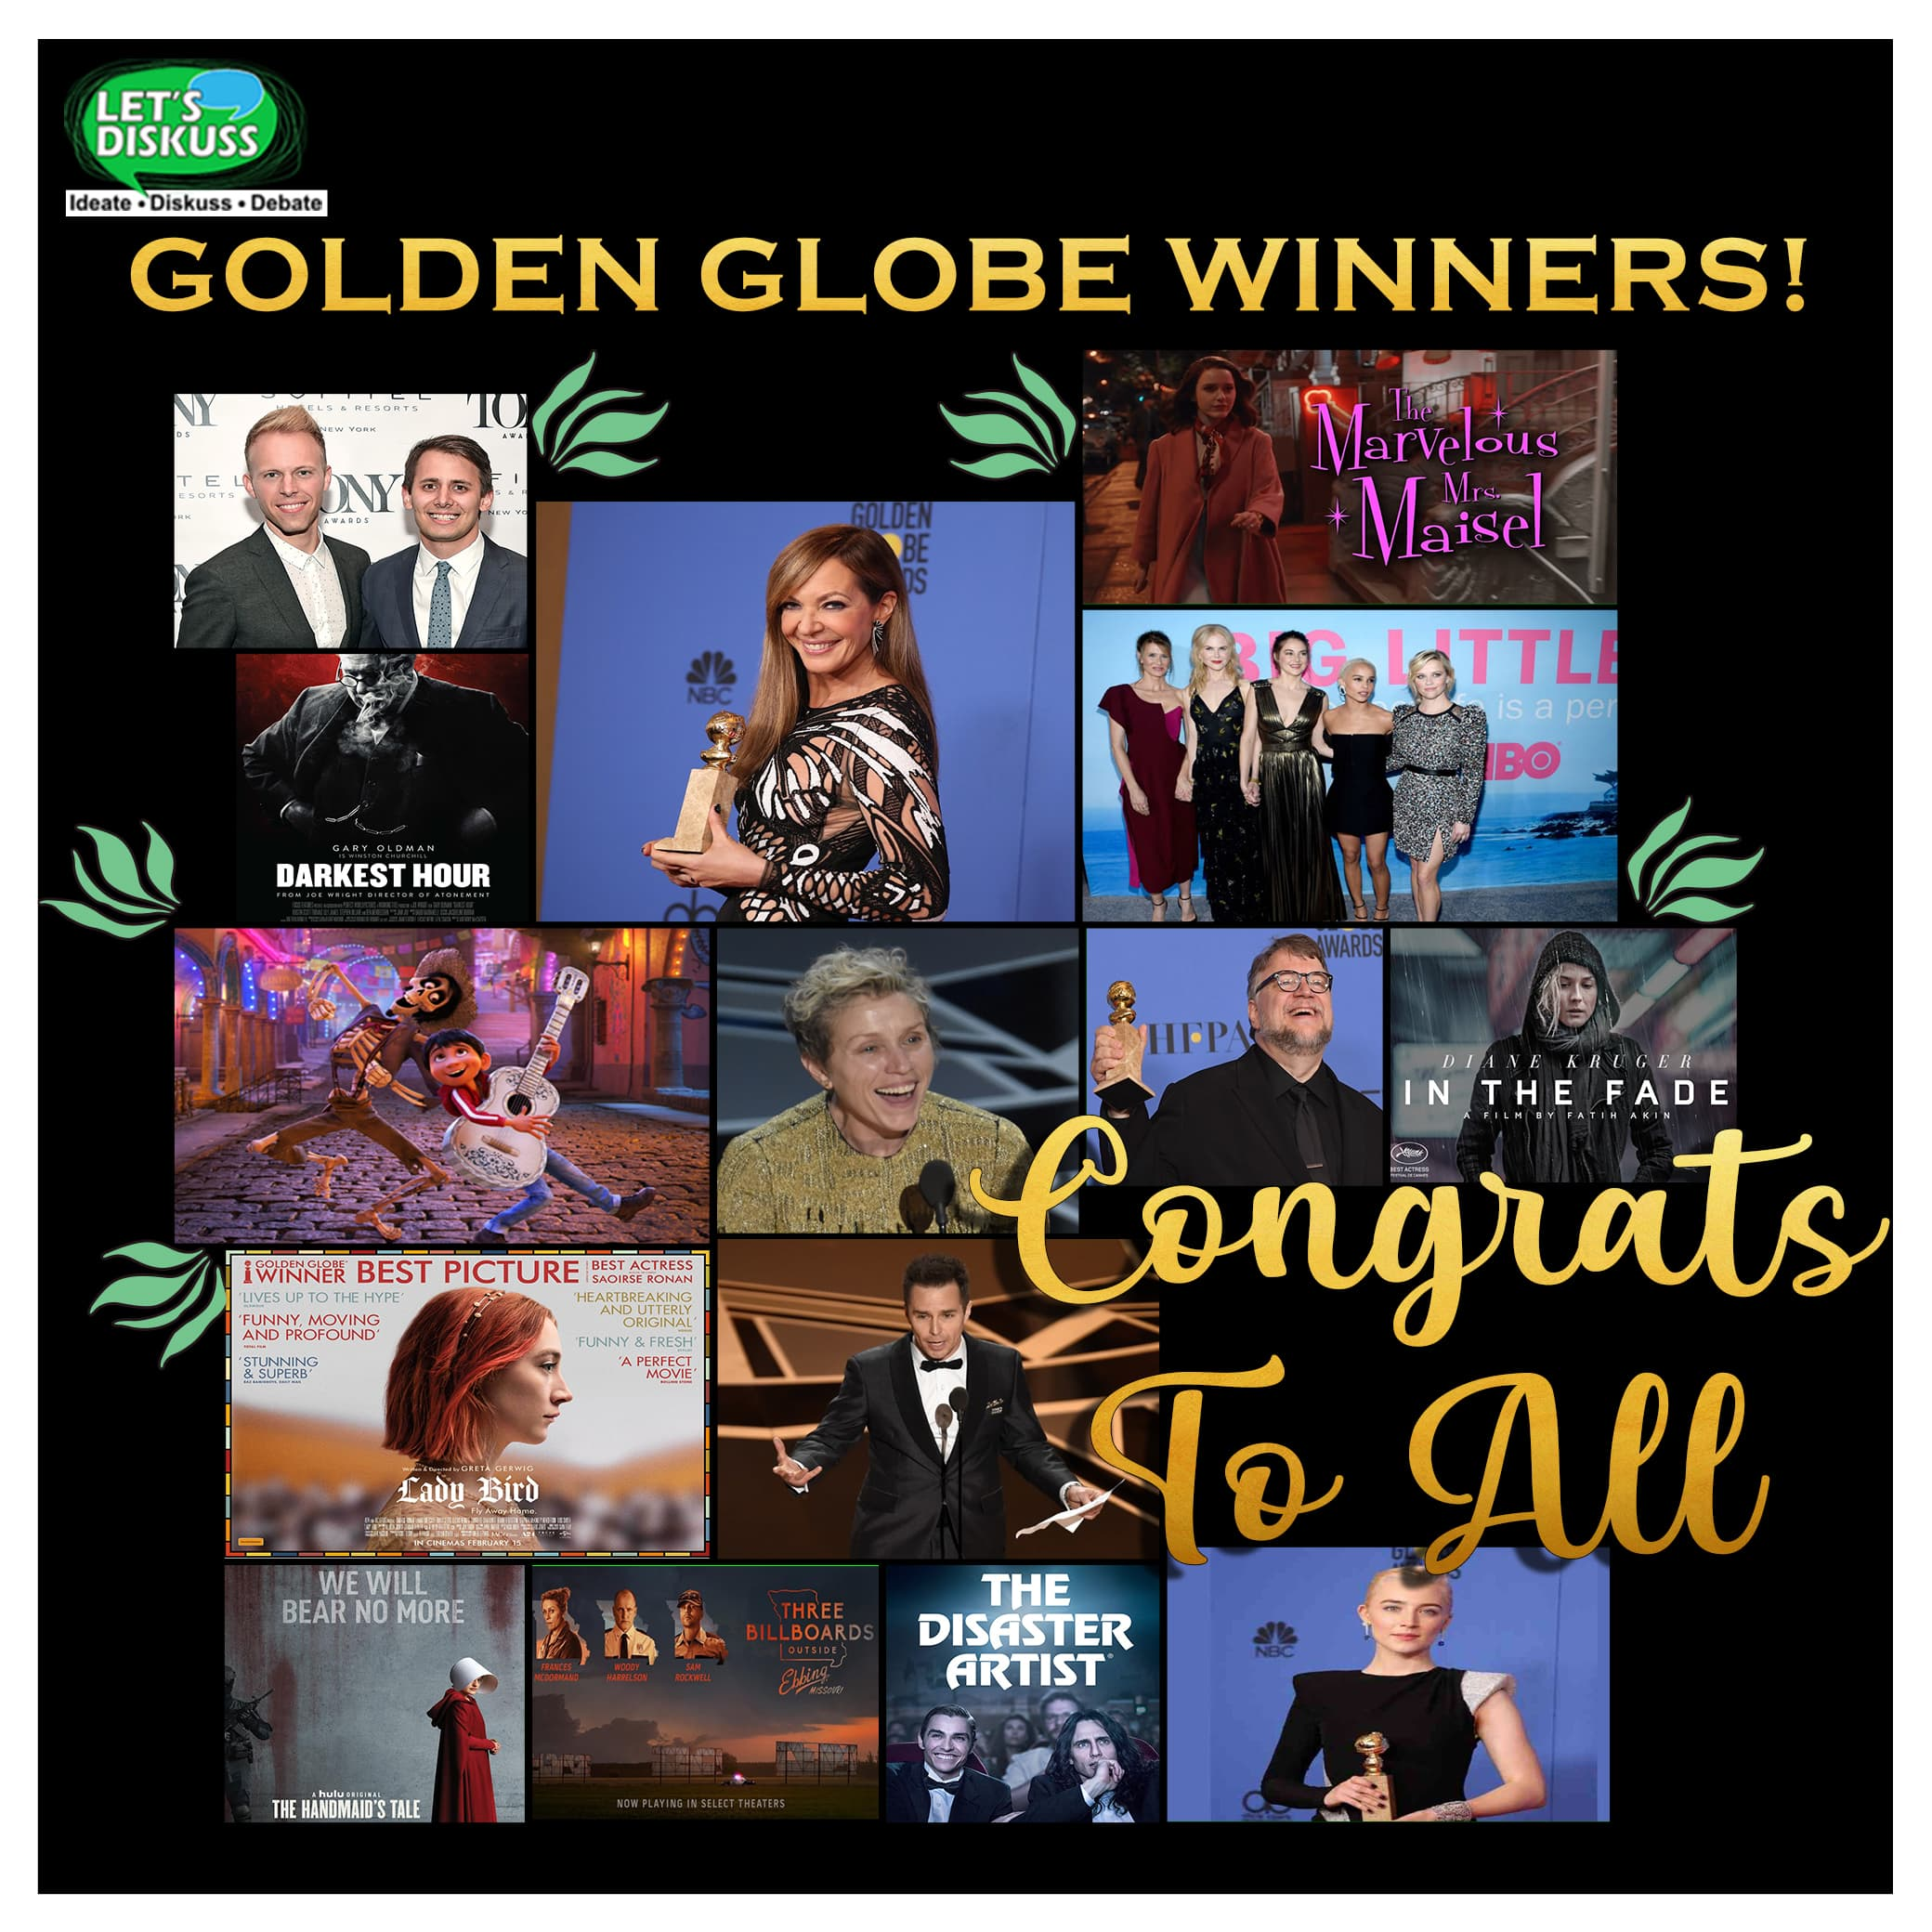 <p class='stitle'>Kudos to all the 76th Golden Globe Awards 2019 winners</p><div class='col-xs-6 col-sm-6 col-md-6 text-center'><a class='slider_share' href='#'' data-toggle='modal' data-target='#myModal'><i class='fa fa-heart-o'></i></a></div><div class='col-xs-6 col-sm-6 col-md-6 text-center'><a href='#share' data-url='myurl' class='slider_share' onClick='shareSlide(330)'><i class='fa fa-share-alt'></i></a></div>